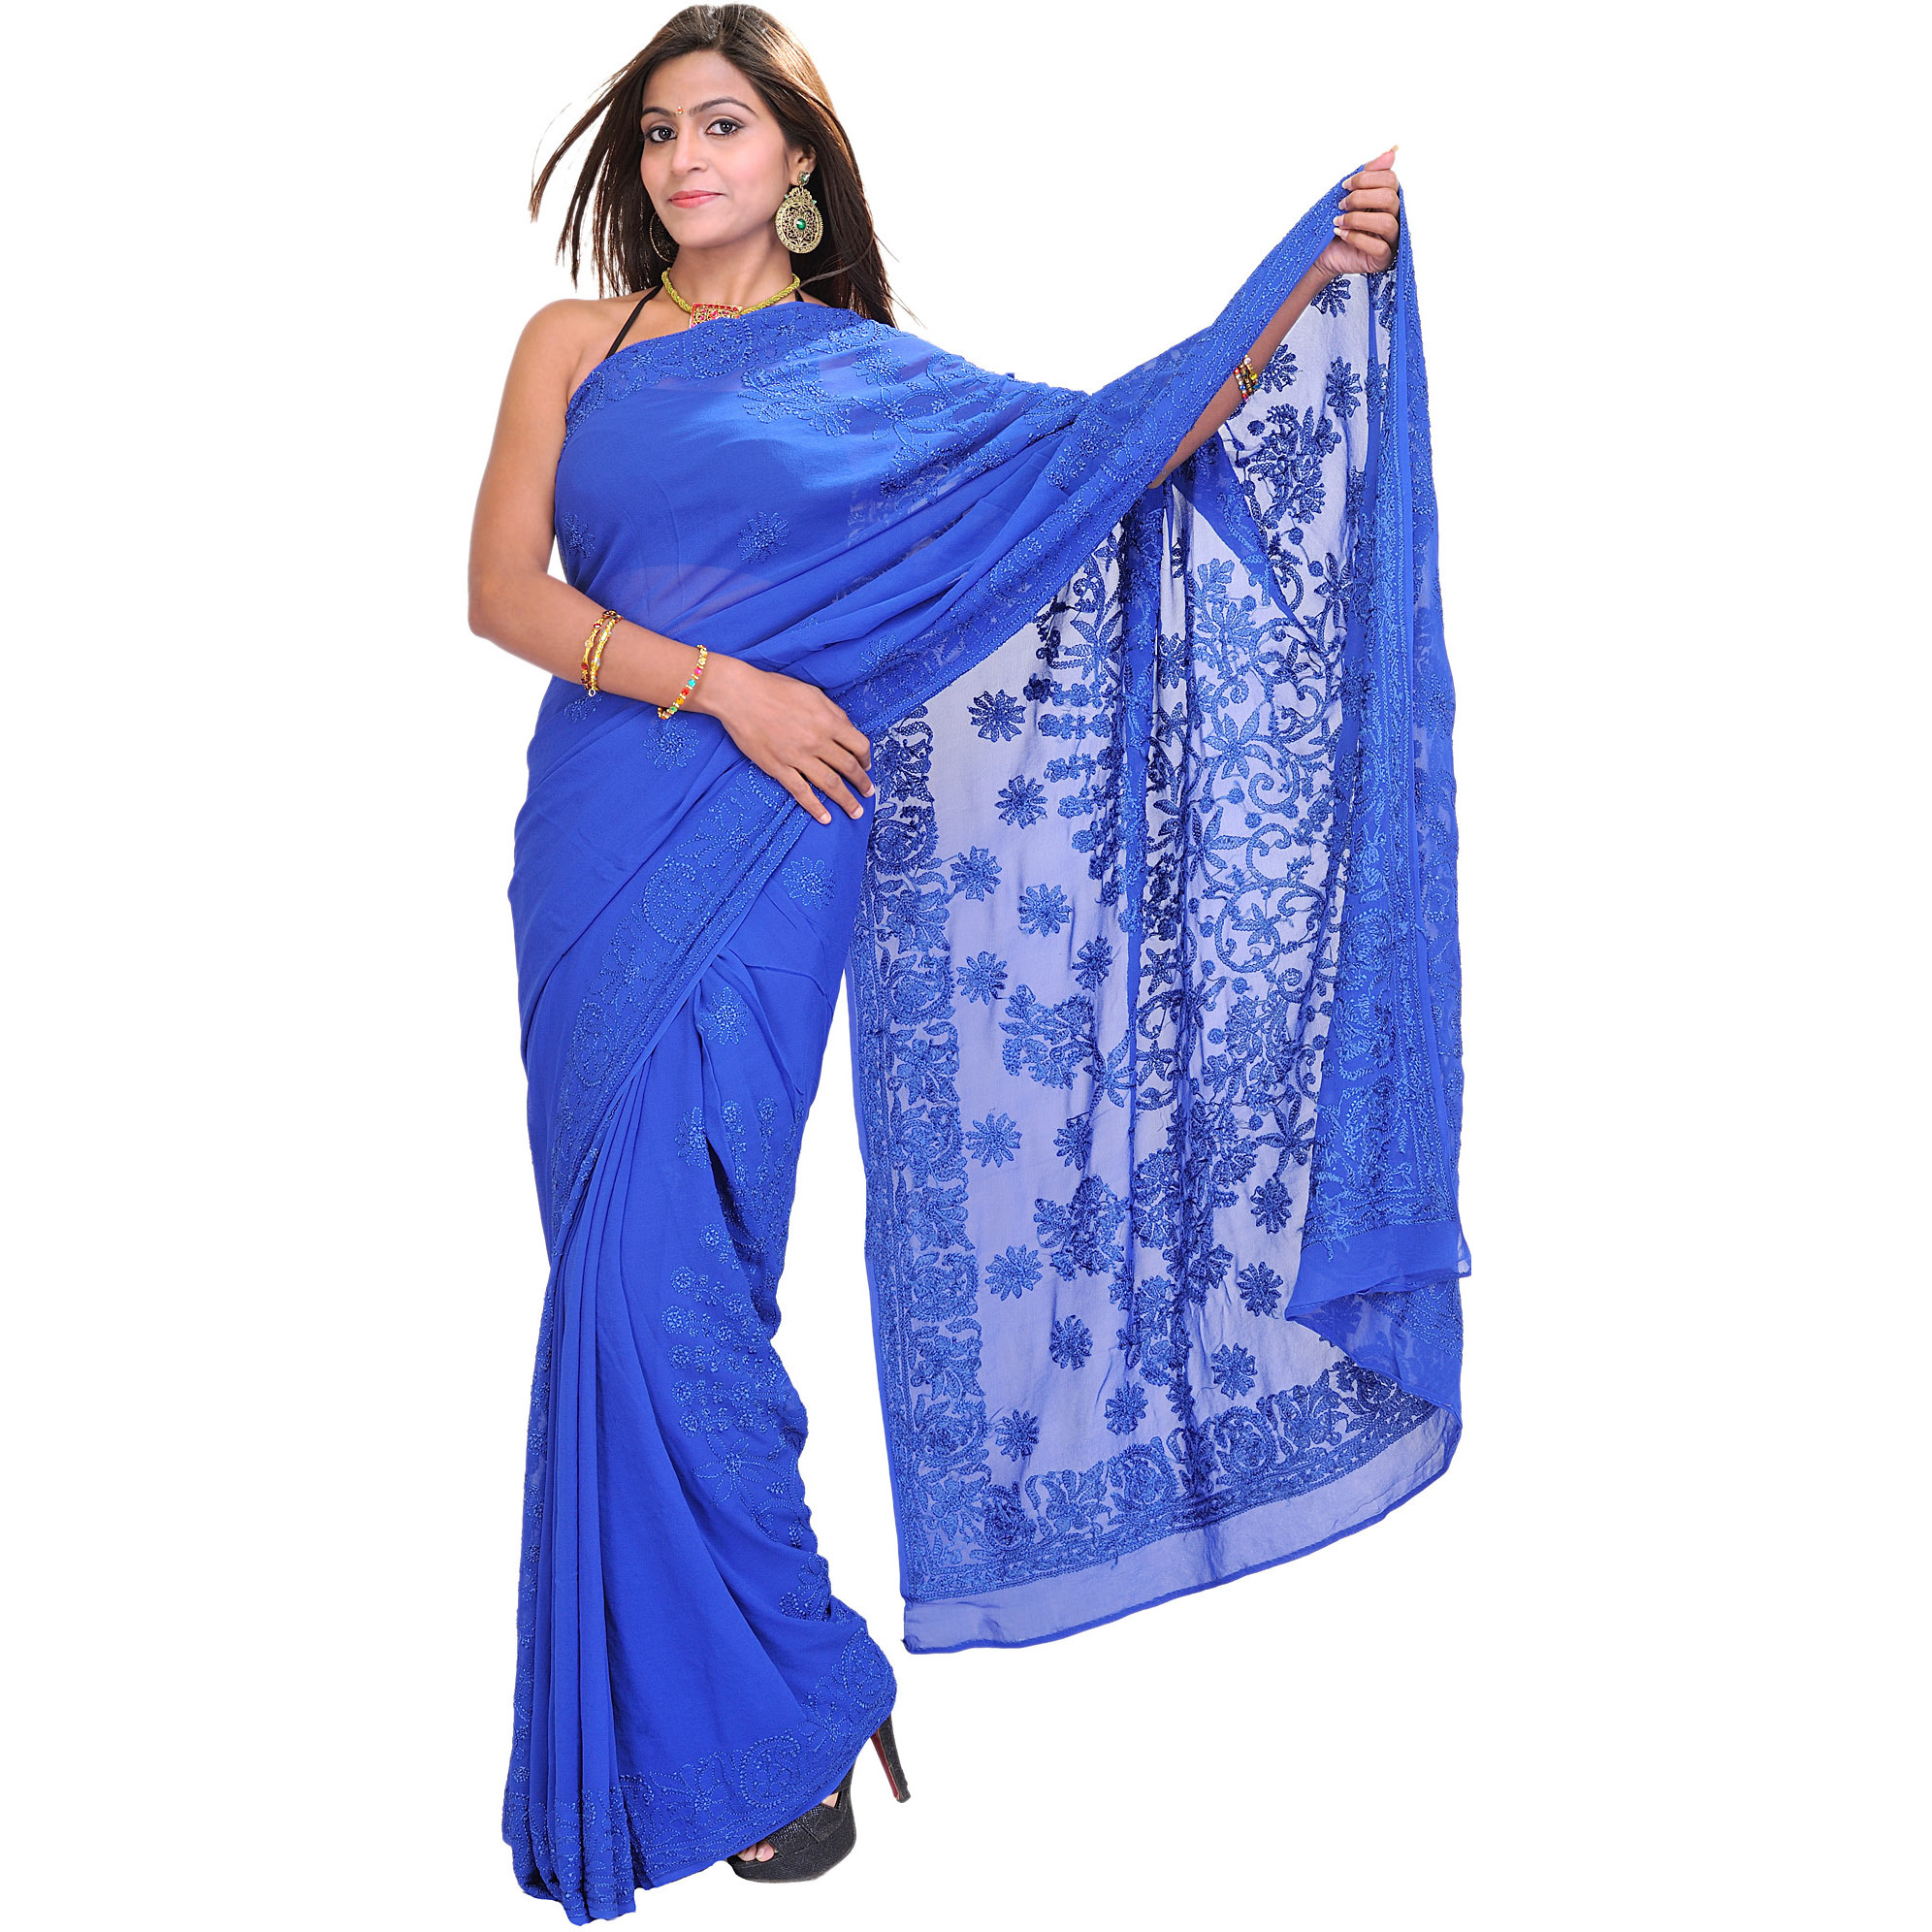 Olympian-Blue Sari From Lucknow with Lukhnavi Chikan Floral Embroidery by Hand